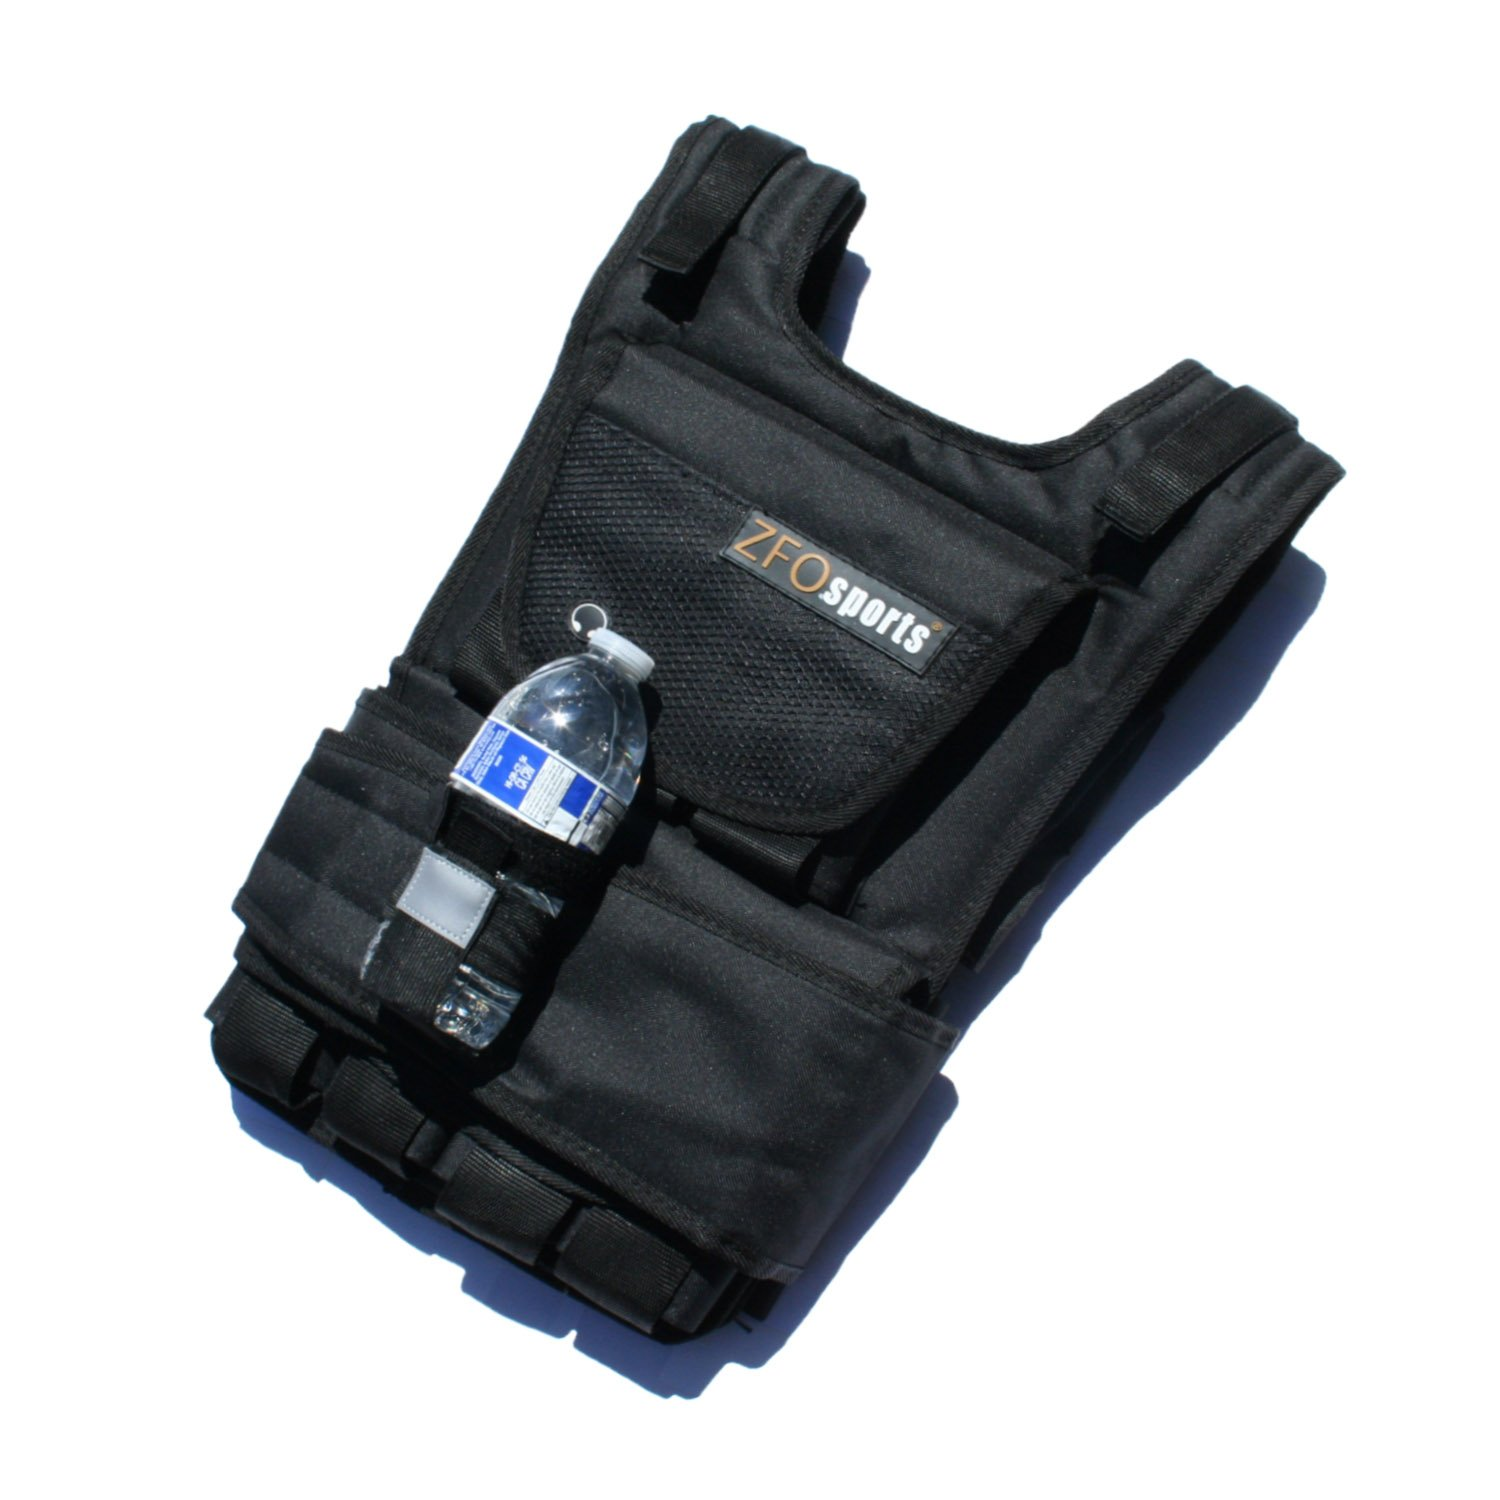 ZFOsports Weighted Vest 40lbs/60lbs/80lbs (60lbs) by ZFOsports (Image #3)